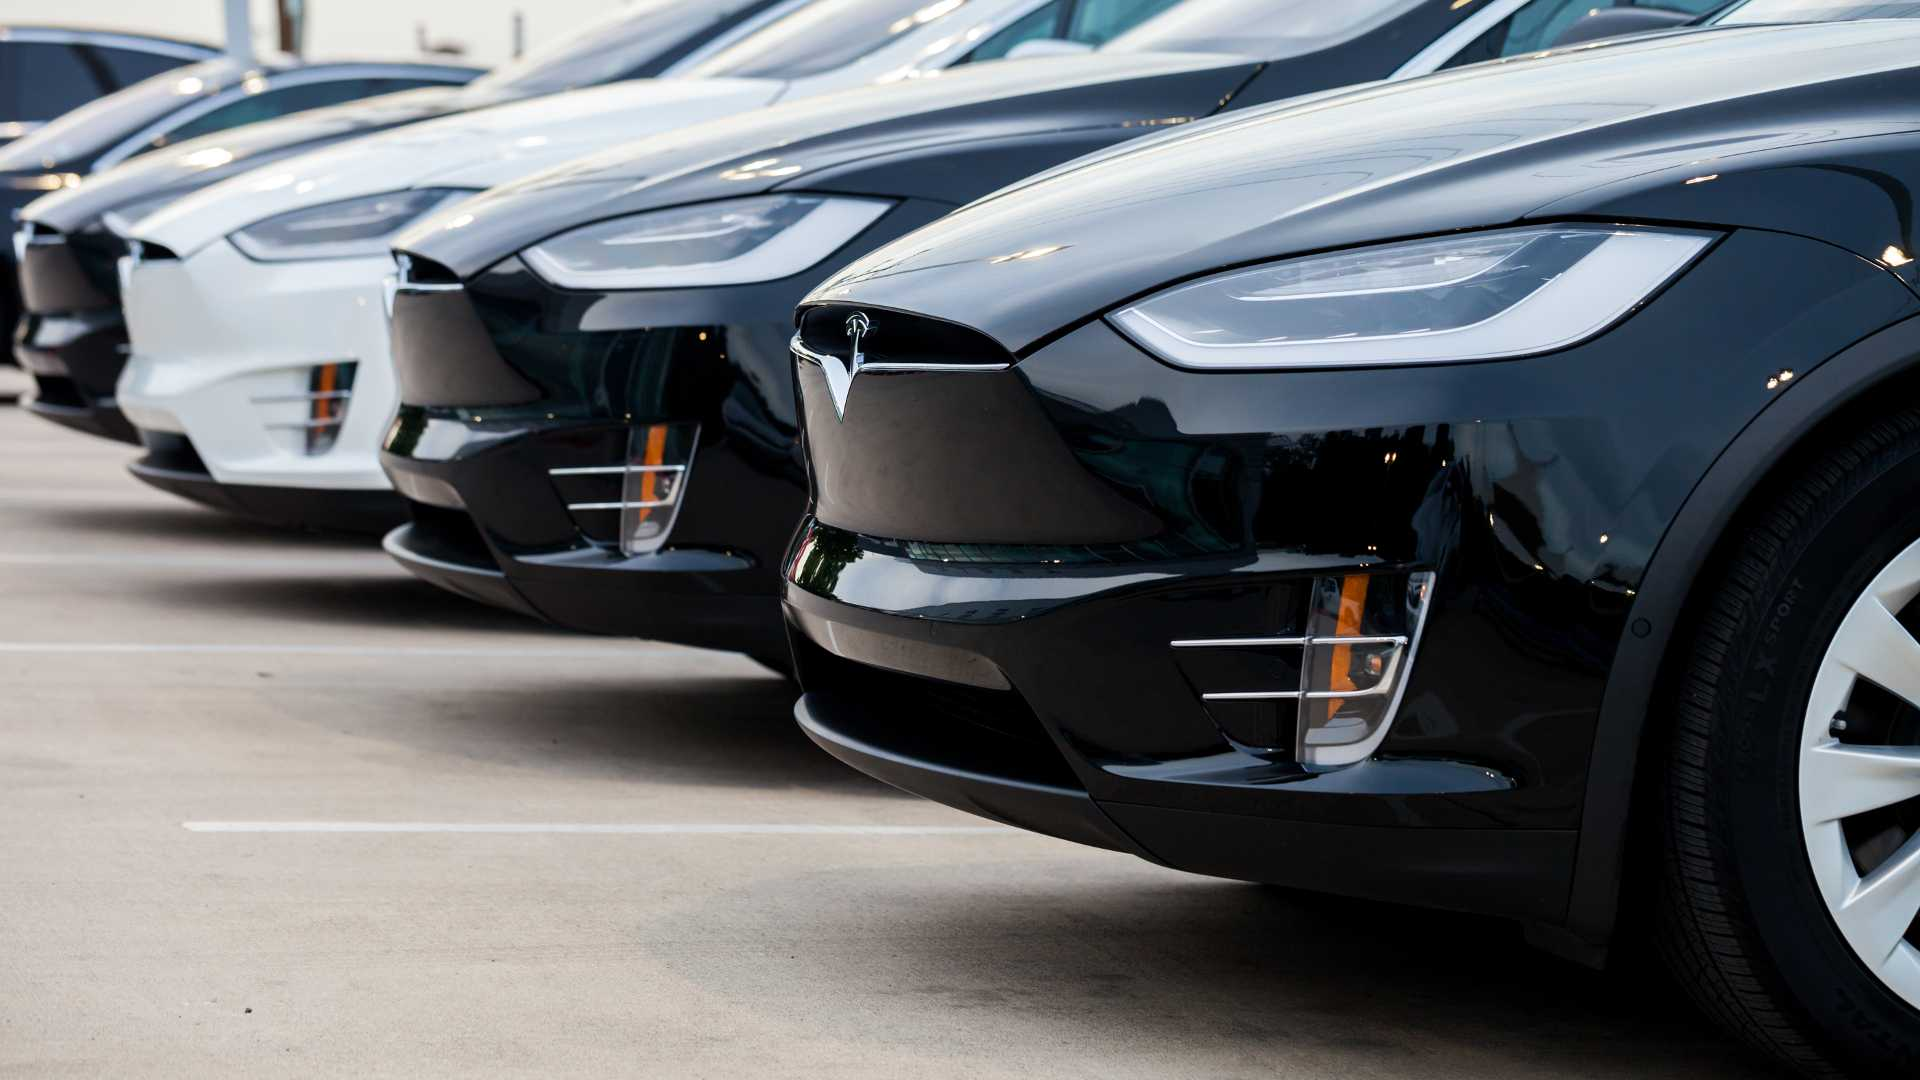 Row of new Tesla Model X electric cars in front of dealership